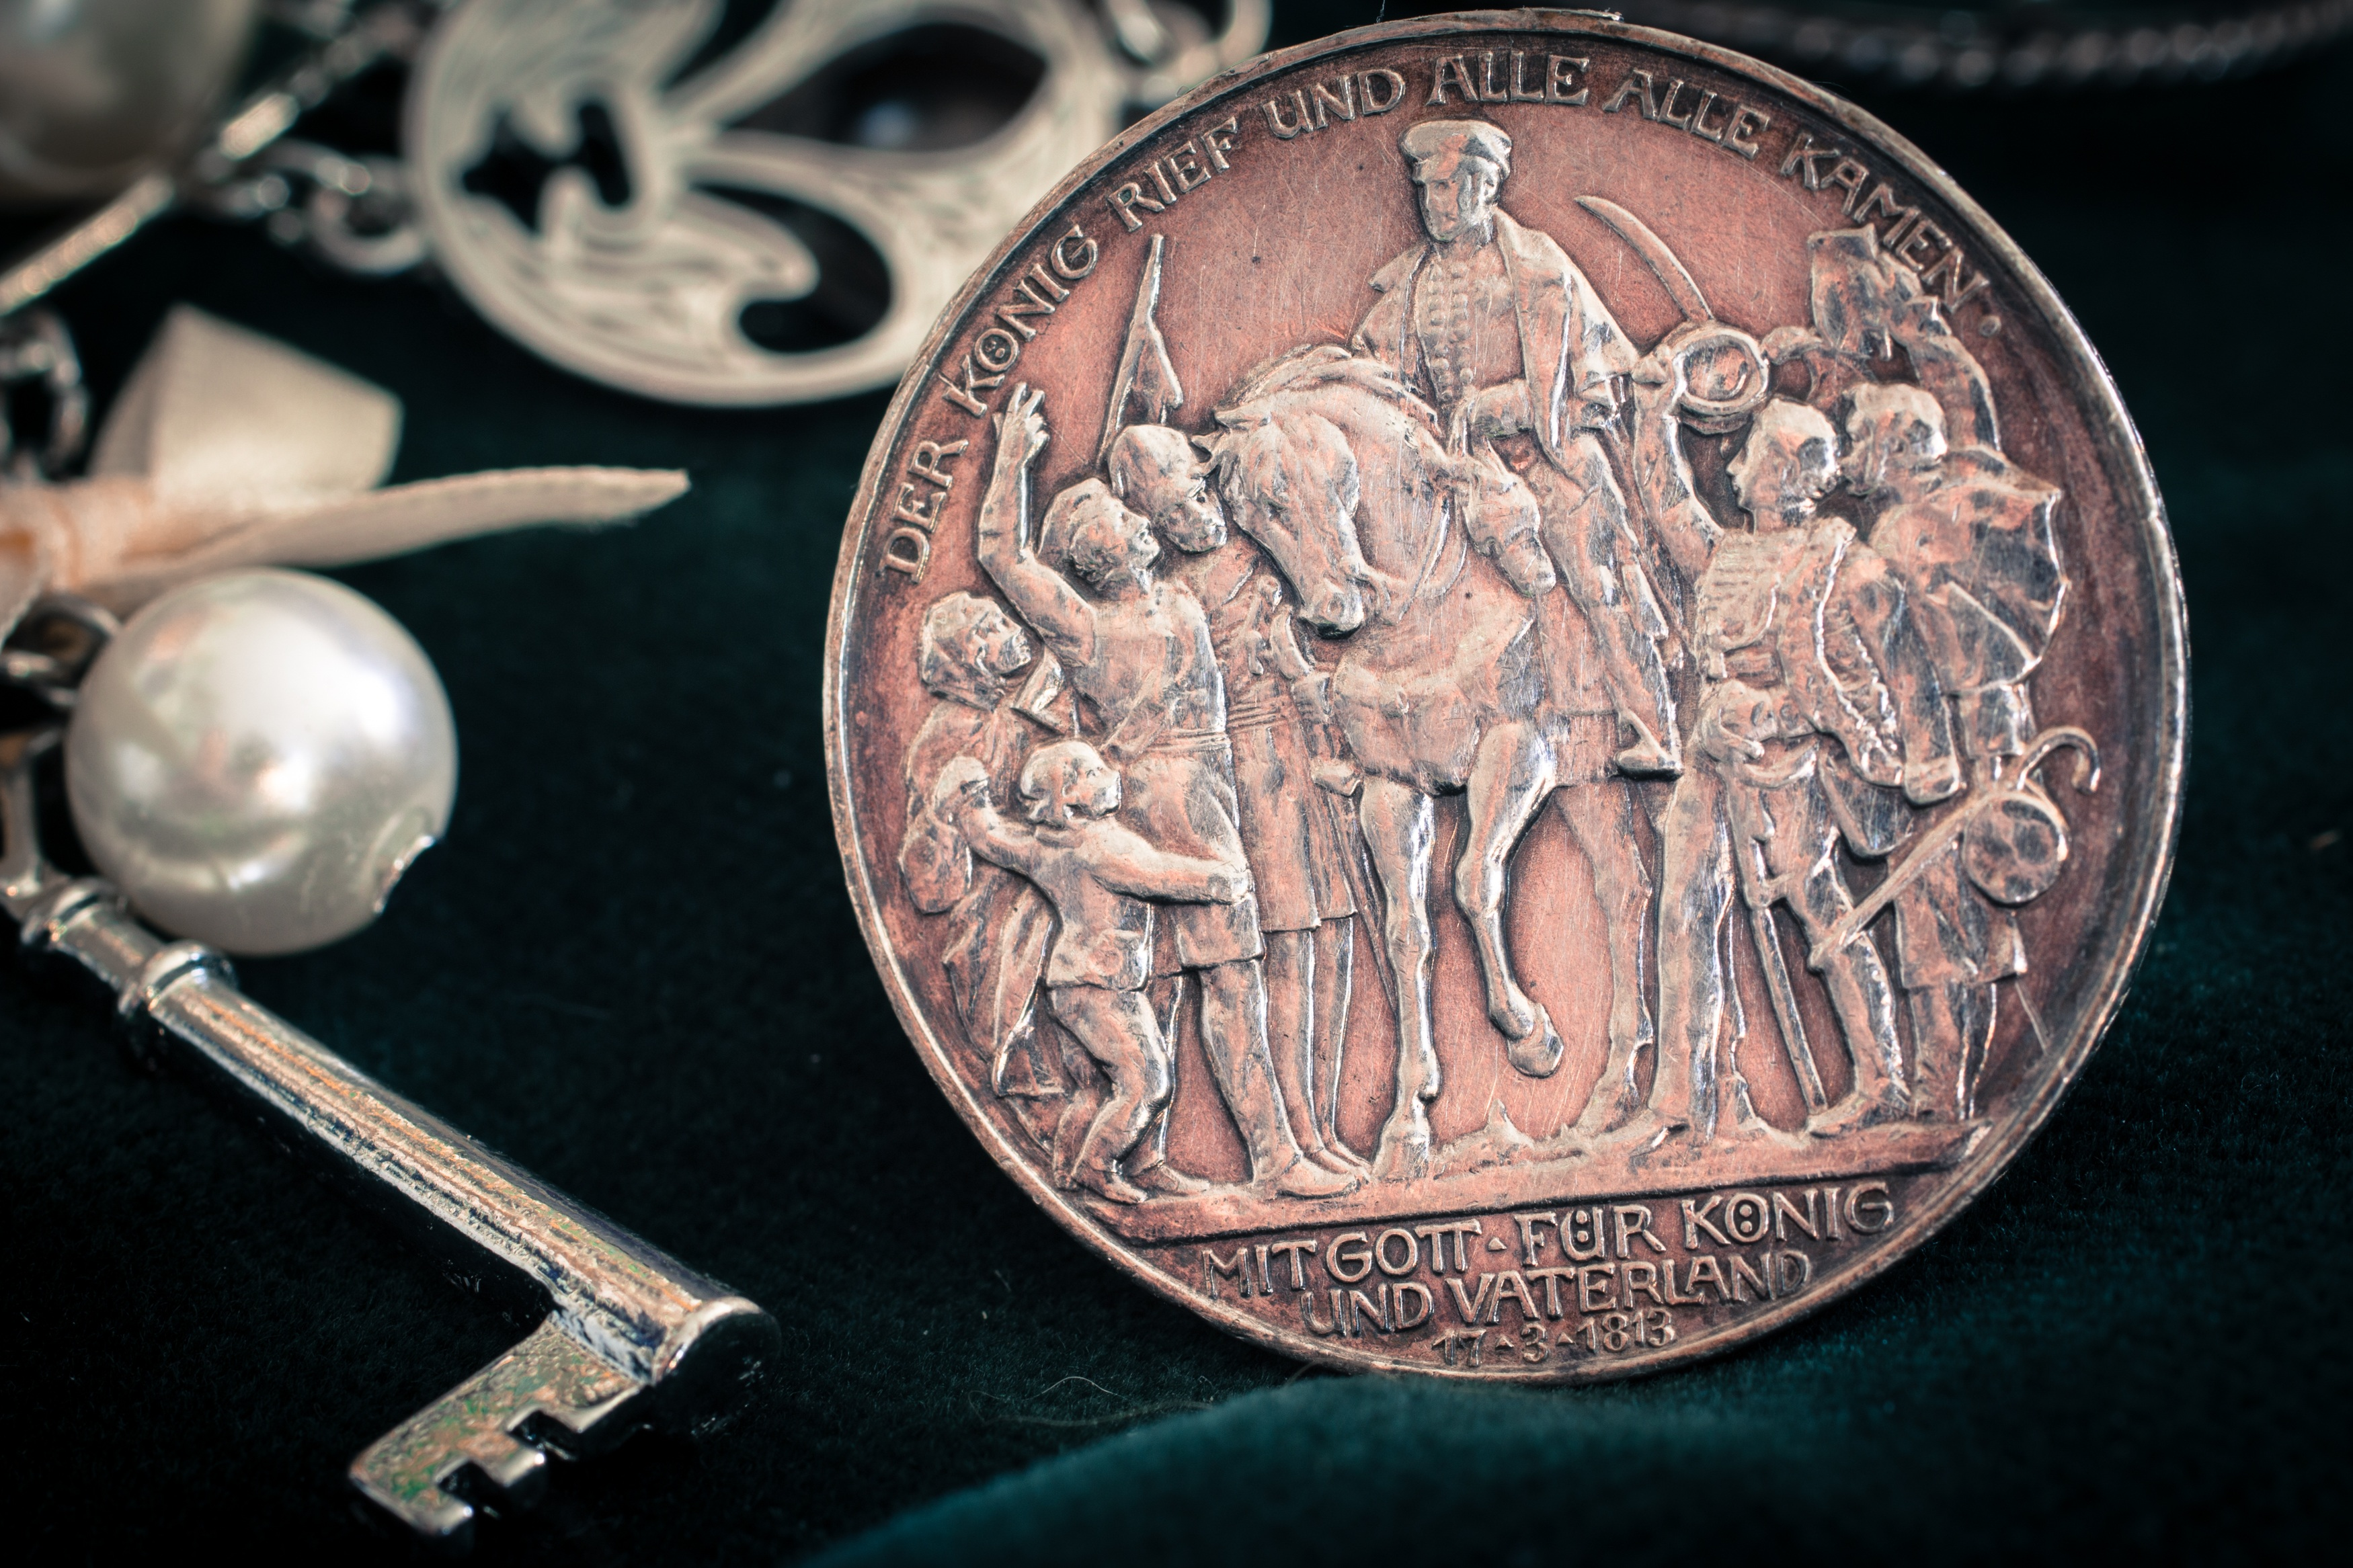 Silver Coin, Power, Value, Silver, Object, HQ Photo